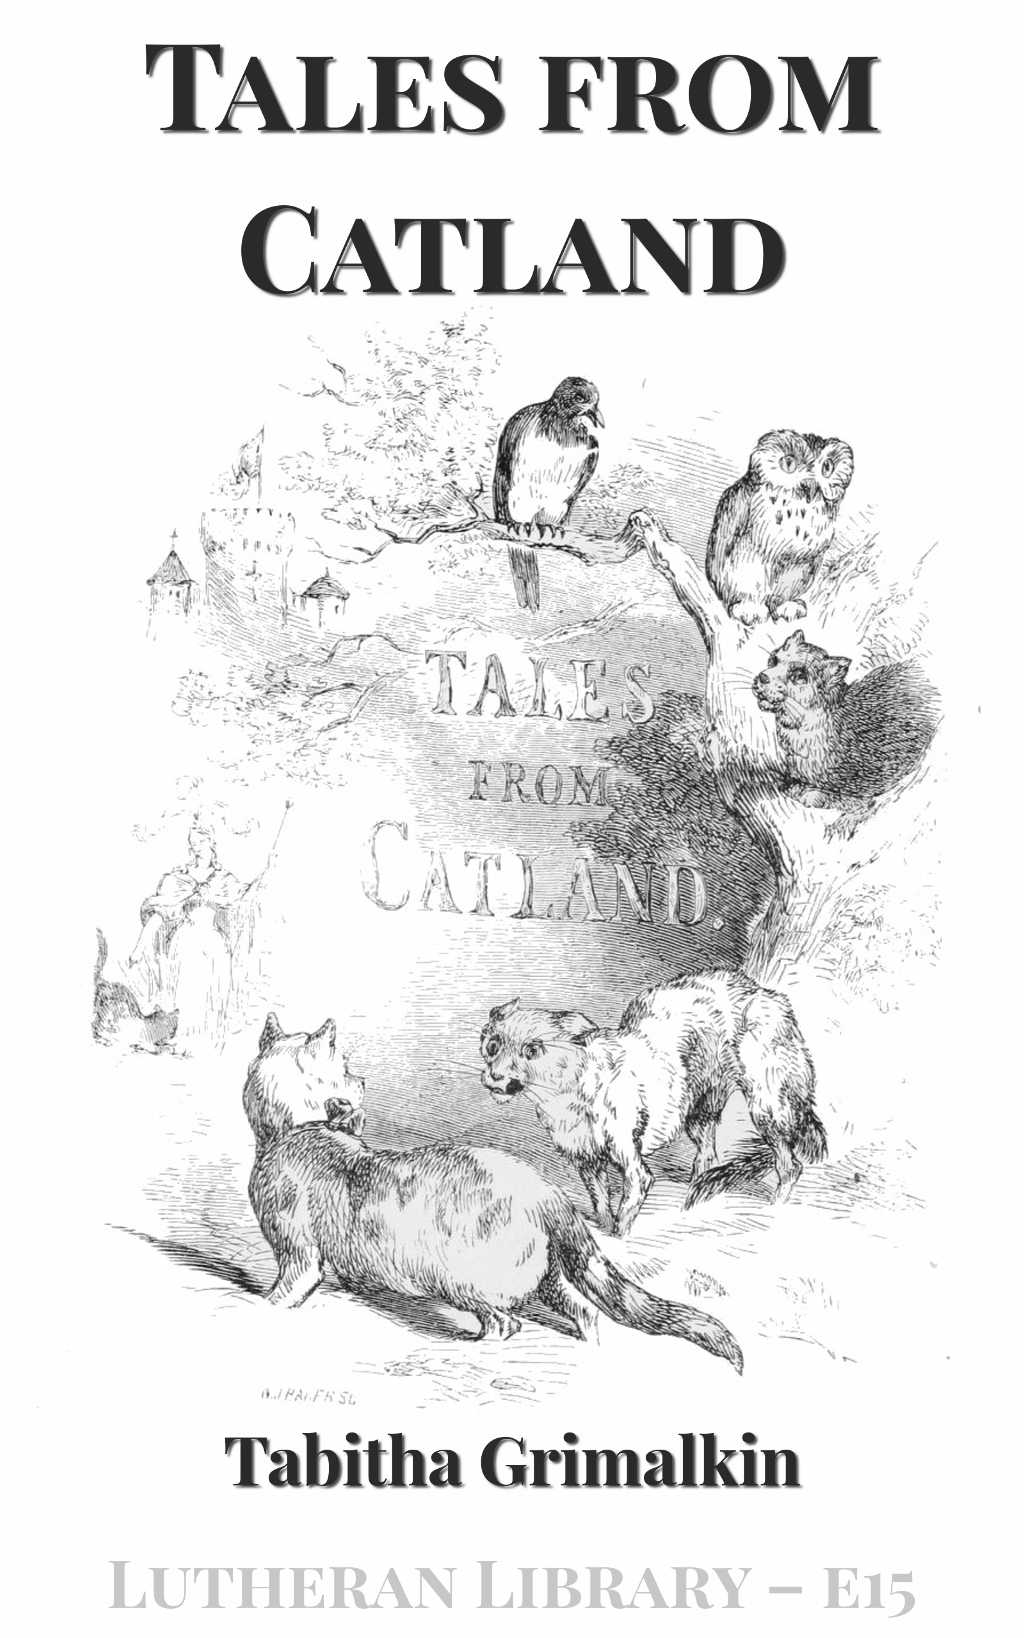 Tales from Catland for Little Kittens by An Old Tabby (by Tabitha Grimalkin)